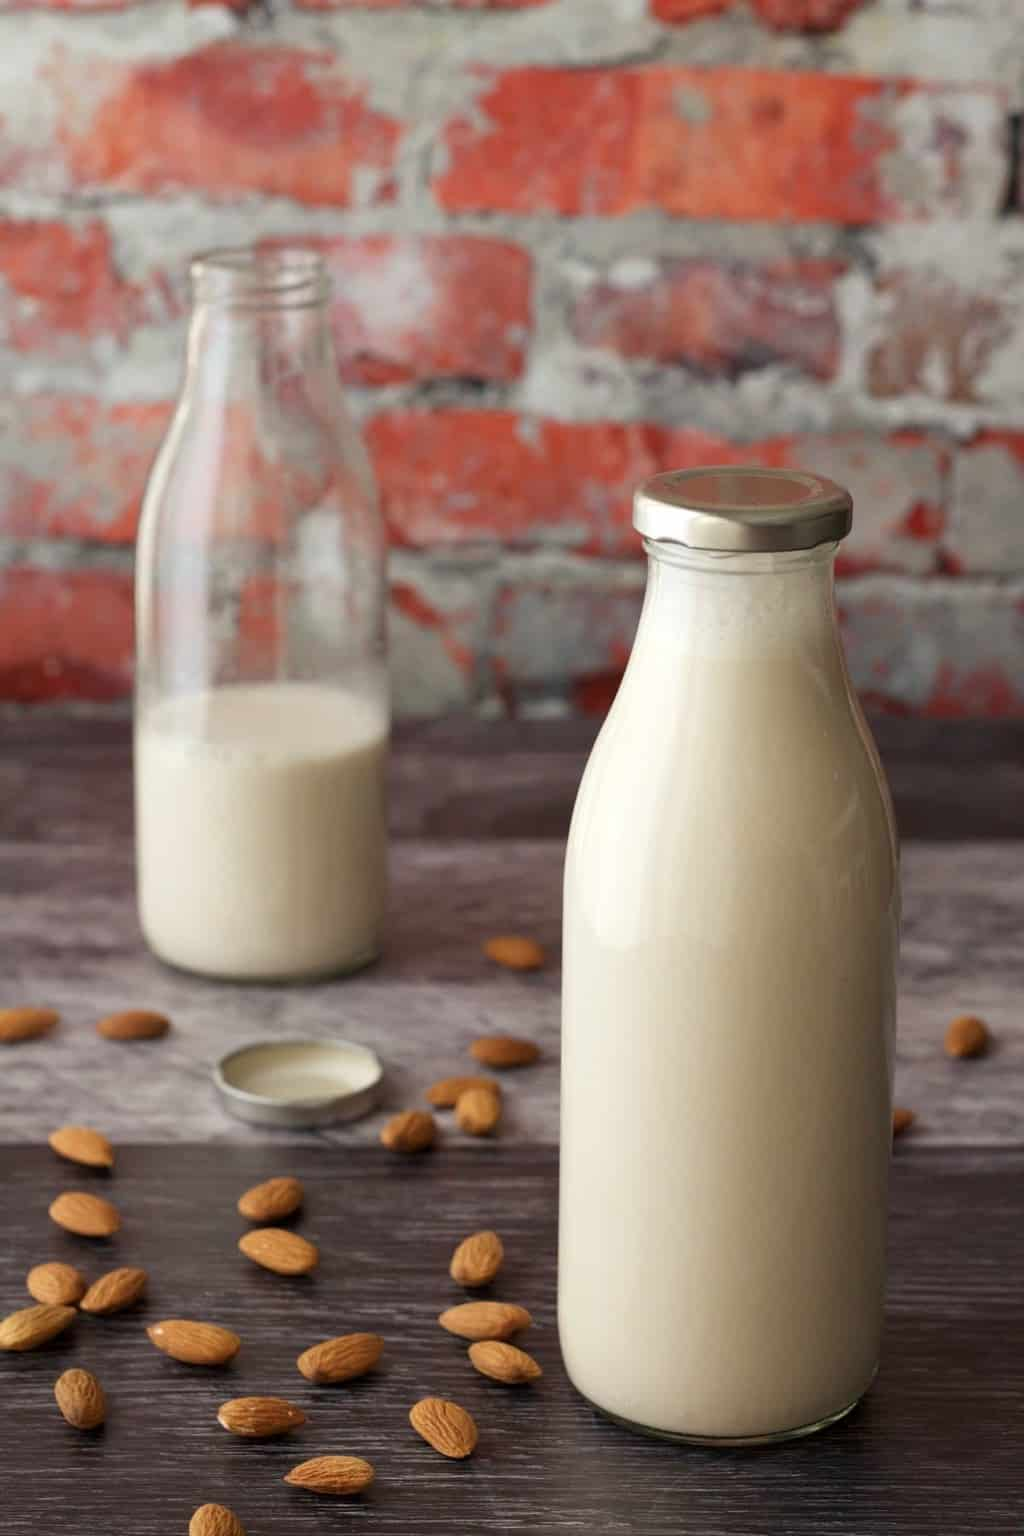 Homemade almond milk in glass milk bottles.